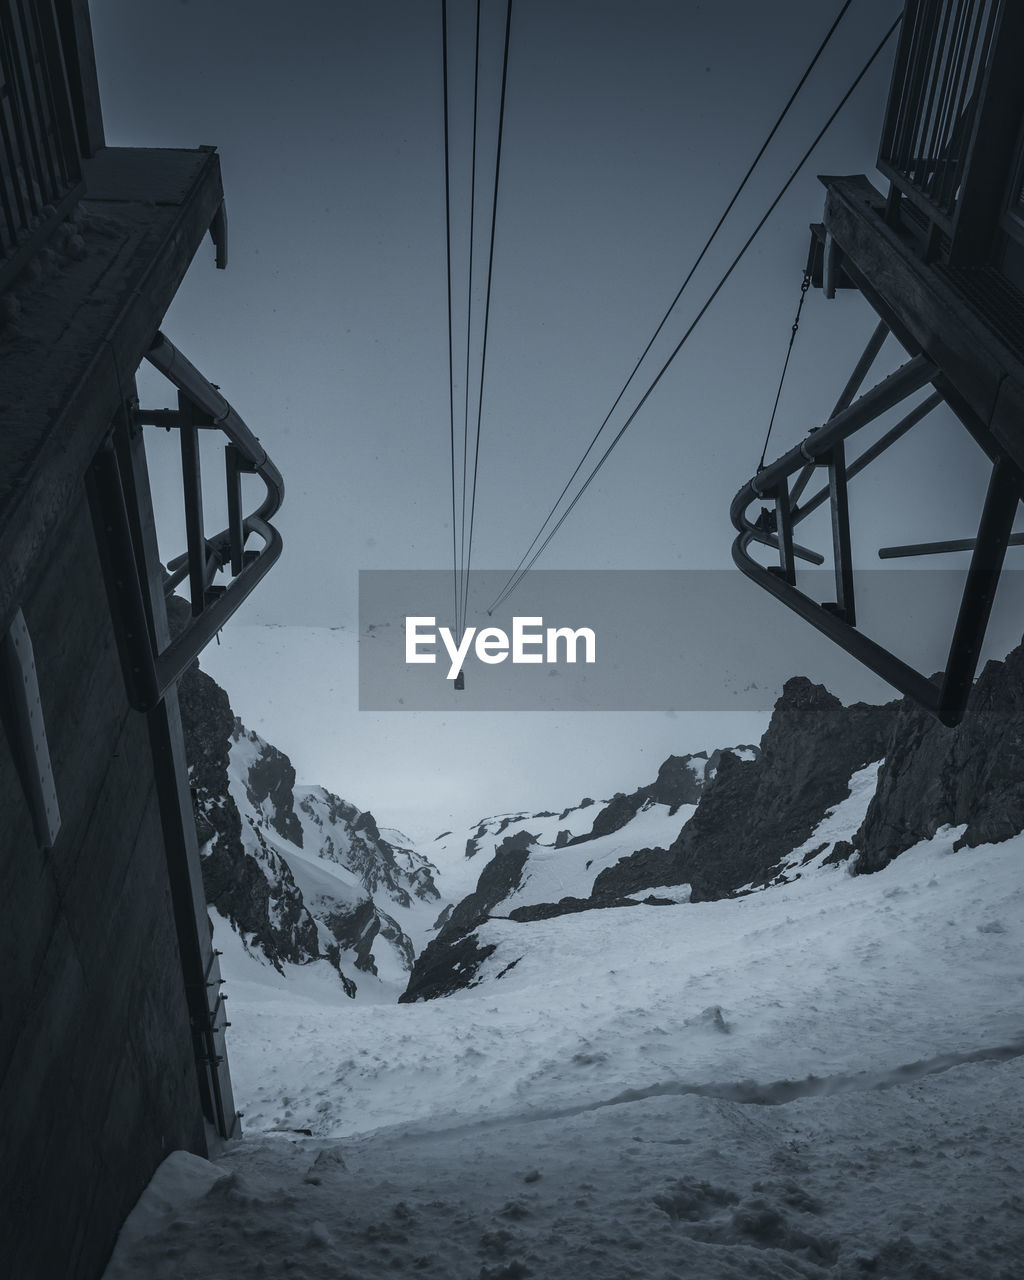 snow, winter, cold temperature, sky, scenics - nature, beauty in nature, mountain, transportation, nature, cable car, snowcapped mountain, ski lift, day, overhead cable car, tranquility, tranquil scene, cable, covering, mountain range, outdoors, no people, mountain peak, ski resort